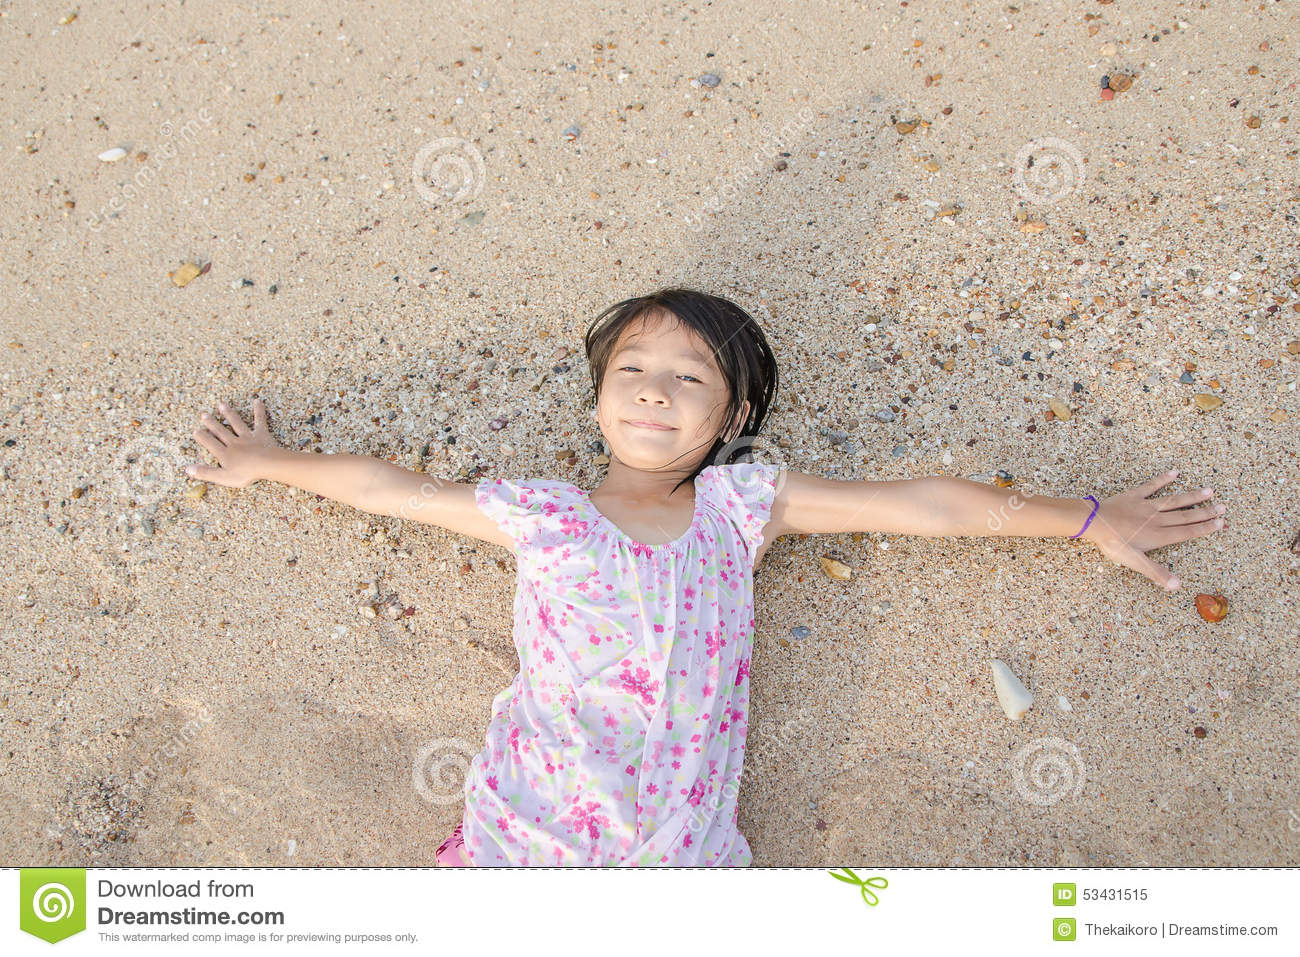 thai child Asian smiling cute little girl lying on the beach sand. Thai chi Royalty Free Stock